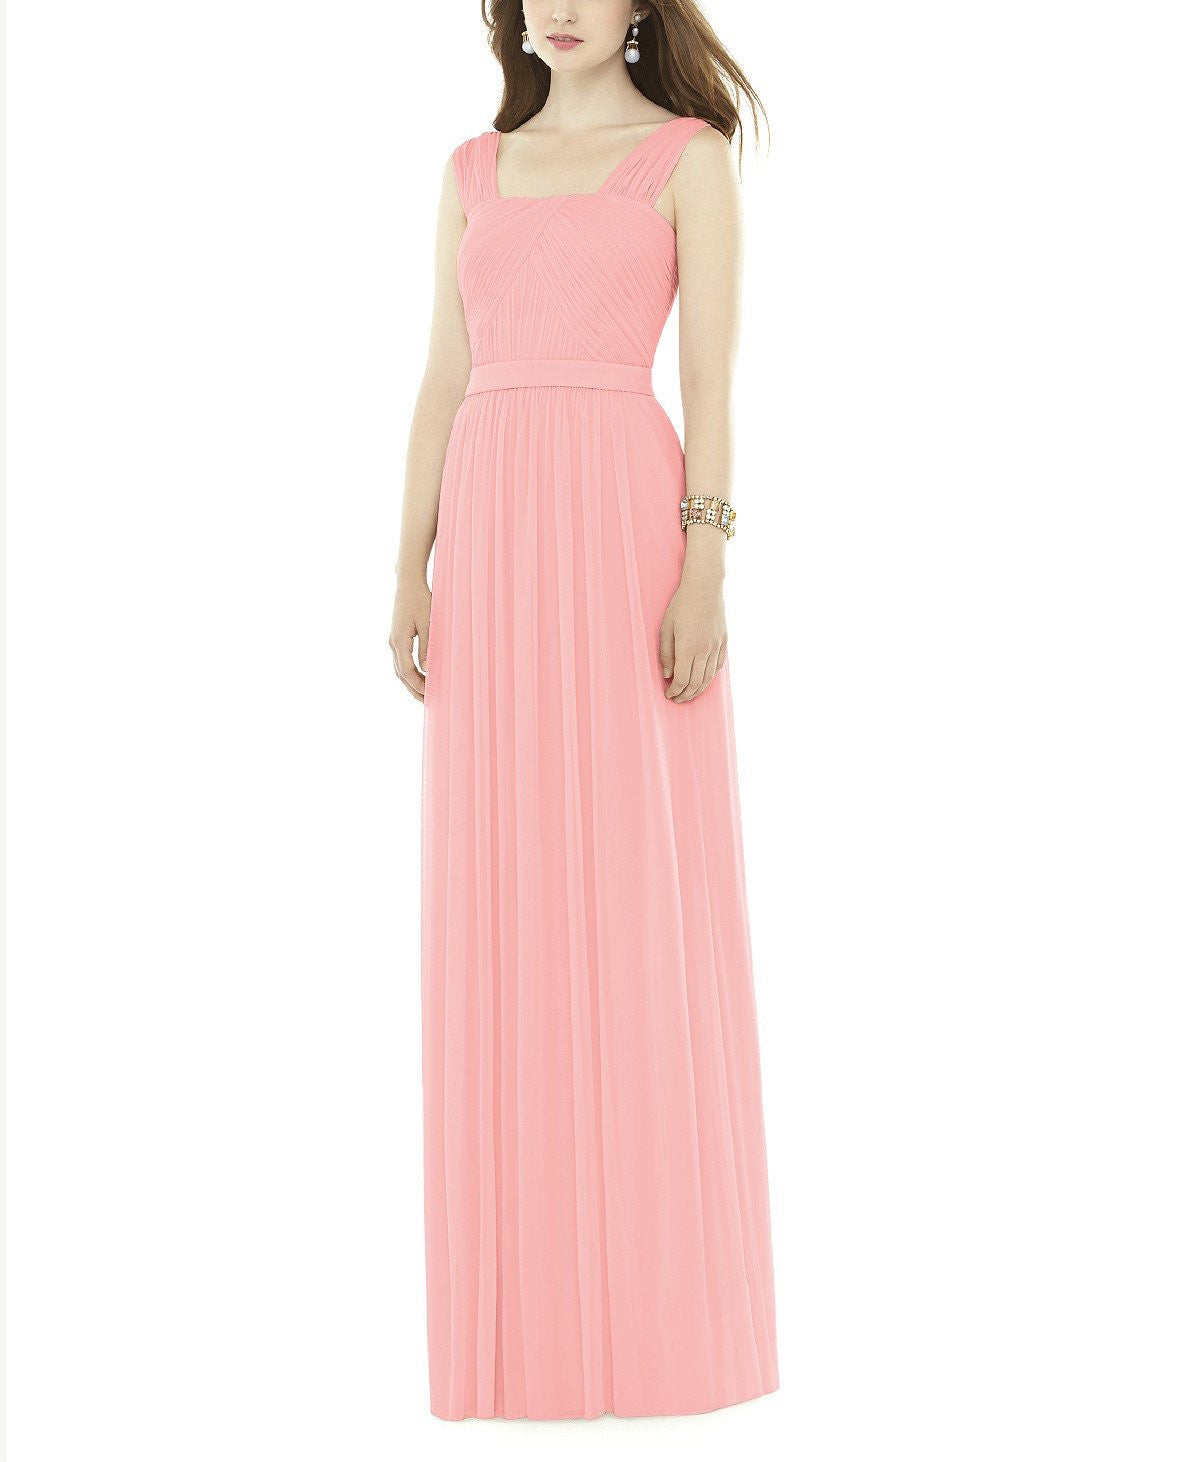 Alfred sung style d718 quickship bridesmaid dress brideside alfred sung style d718 quickship ombrellifo Gallery